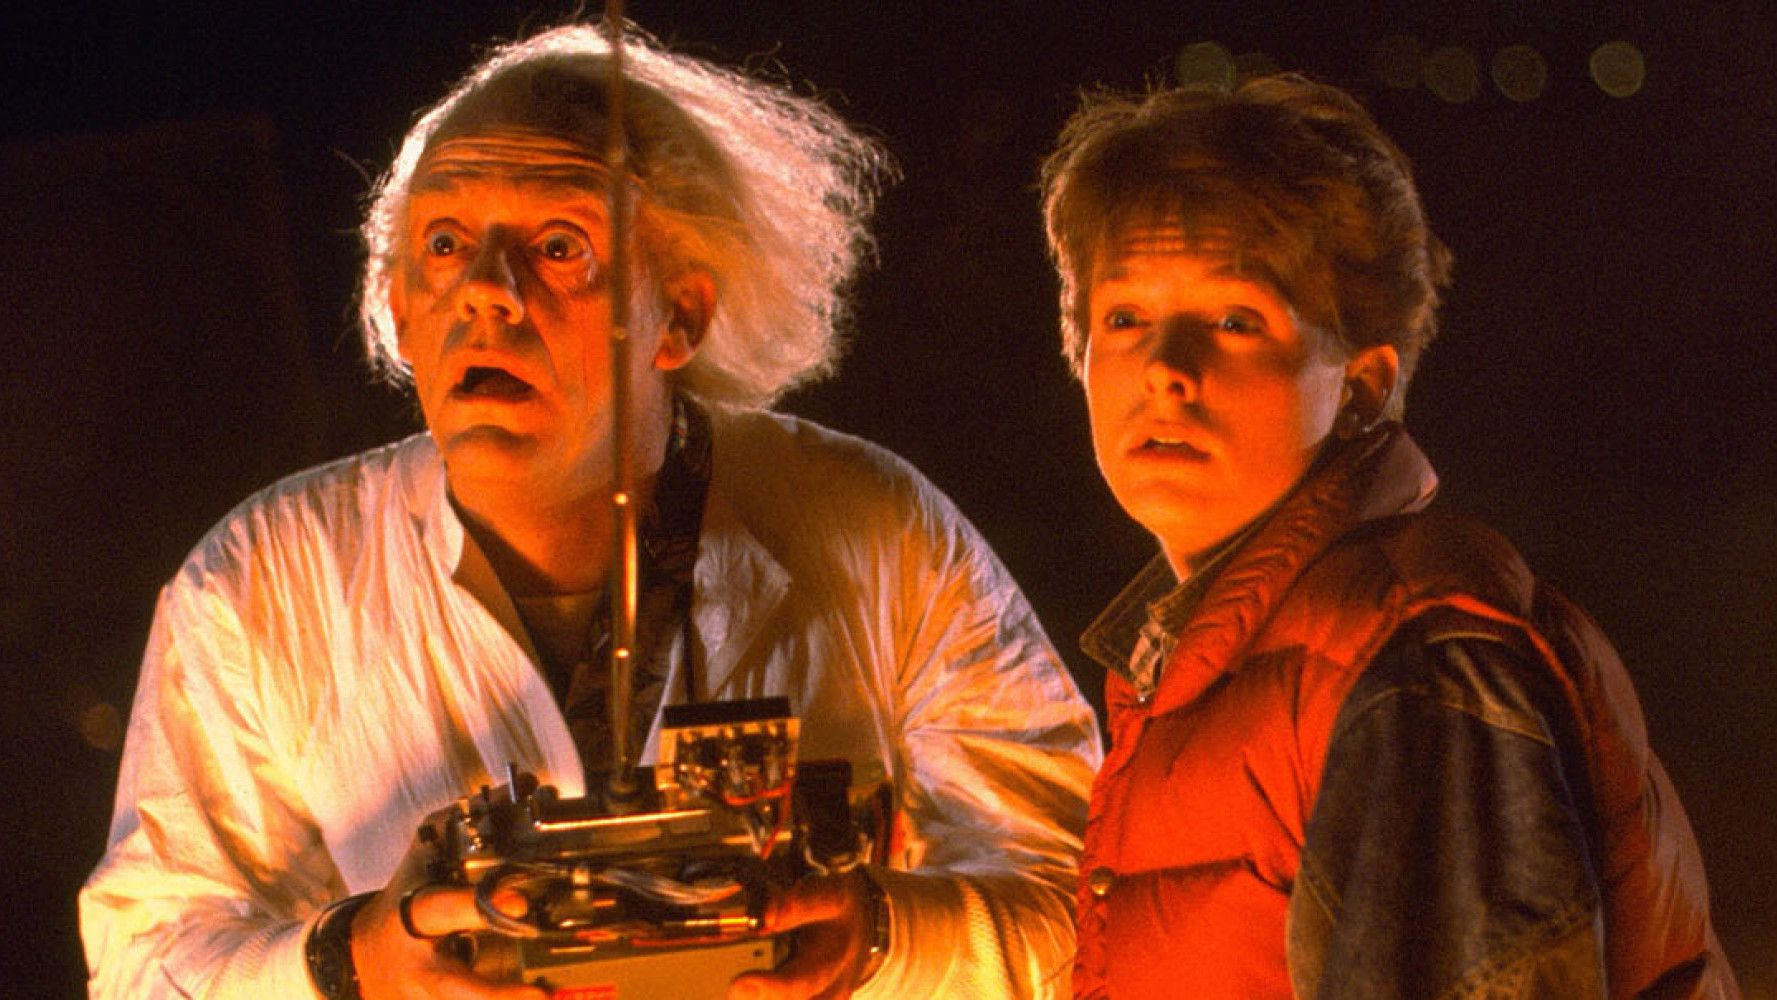 Back to the Future (1985) Directed by Robert Zemeckis Shown from left: Christopher Lloyd (as Dr. Emmett Brown), Michael J. Fox (as Marty McFly)